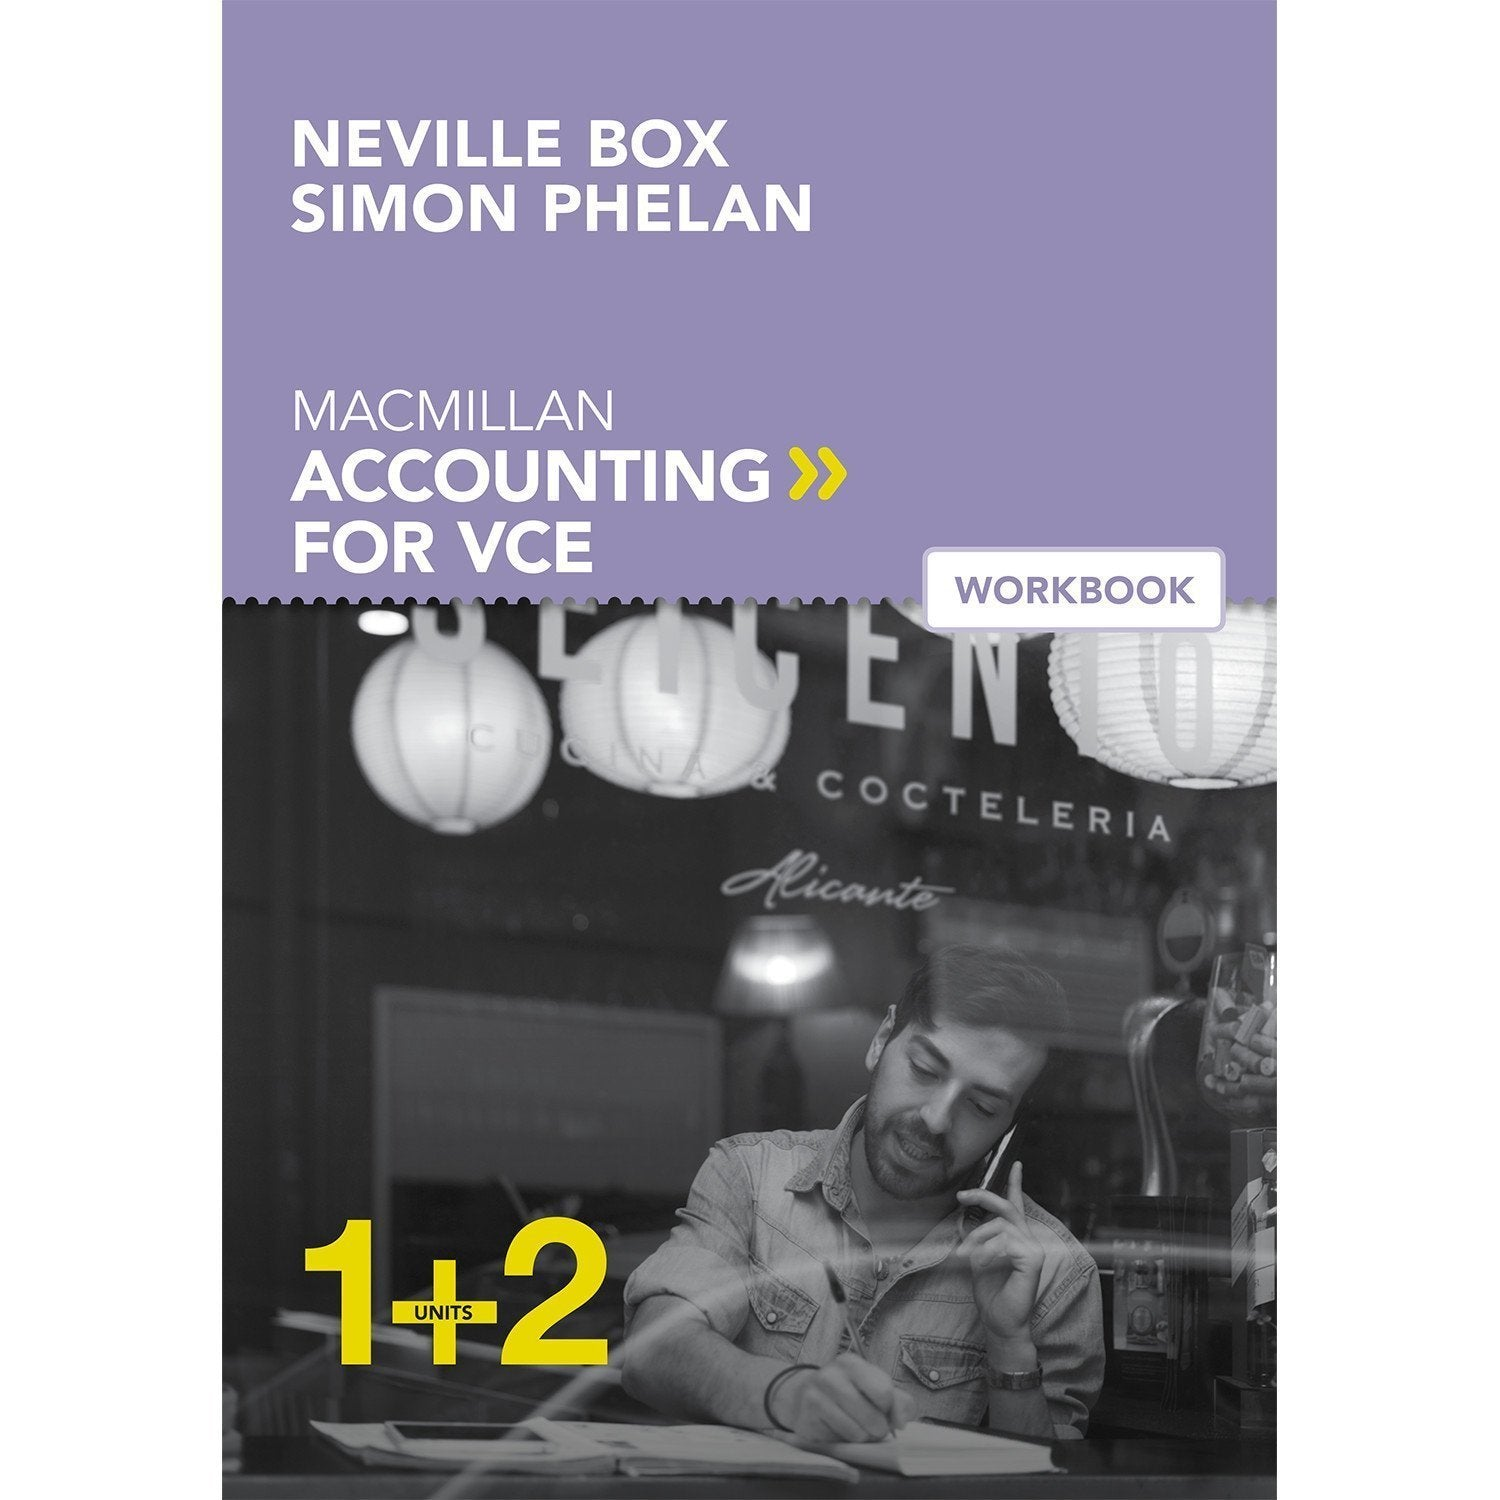 Macmillan Accounting VCE Units 1&2 Value Bundle (Student Book + Digital + Workbook)